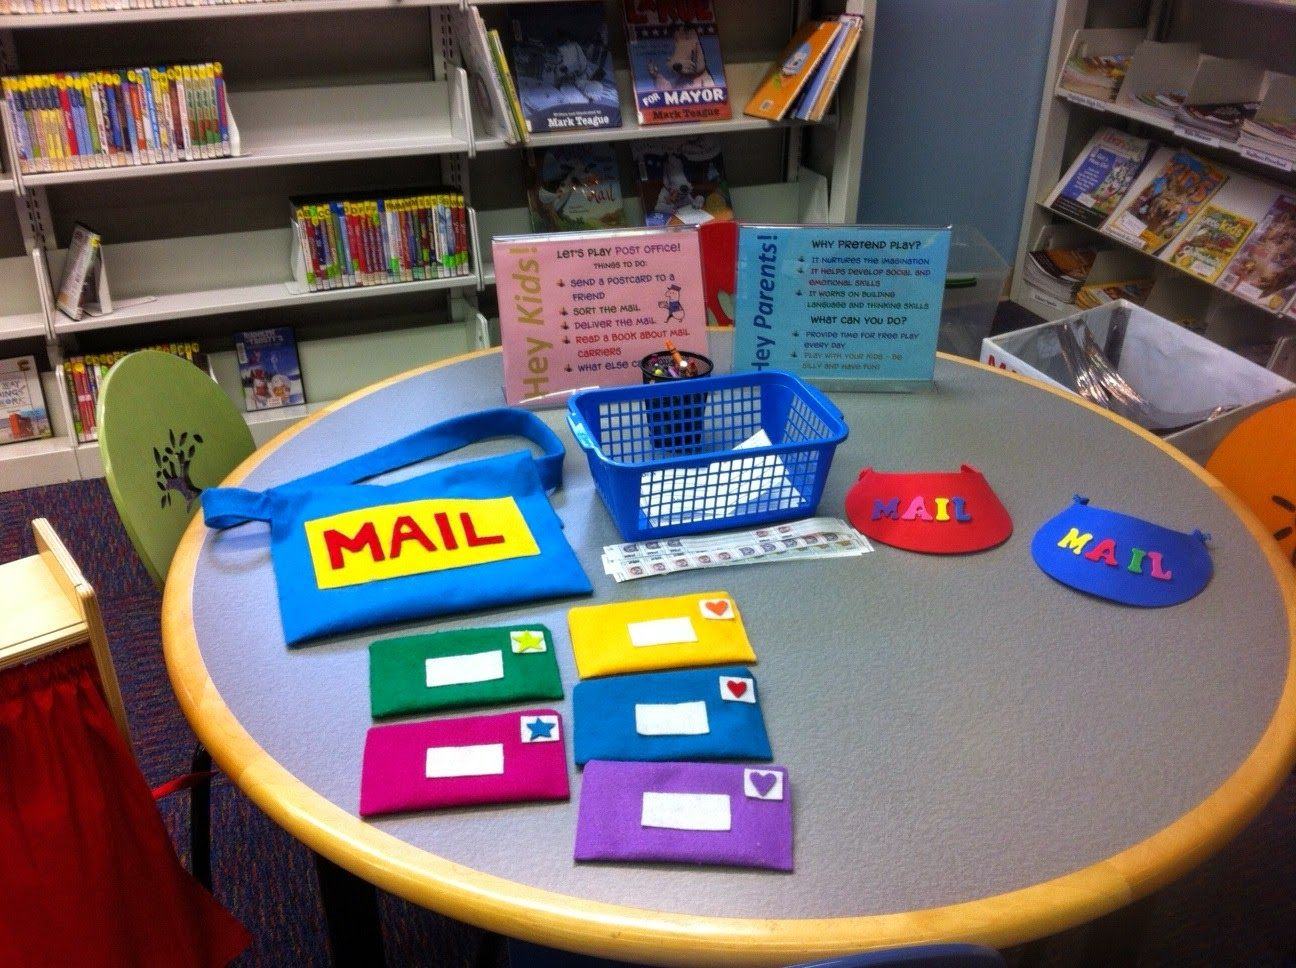 Library Village Imagination Station Let S Play Post Office